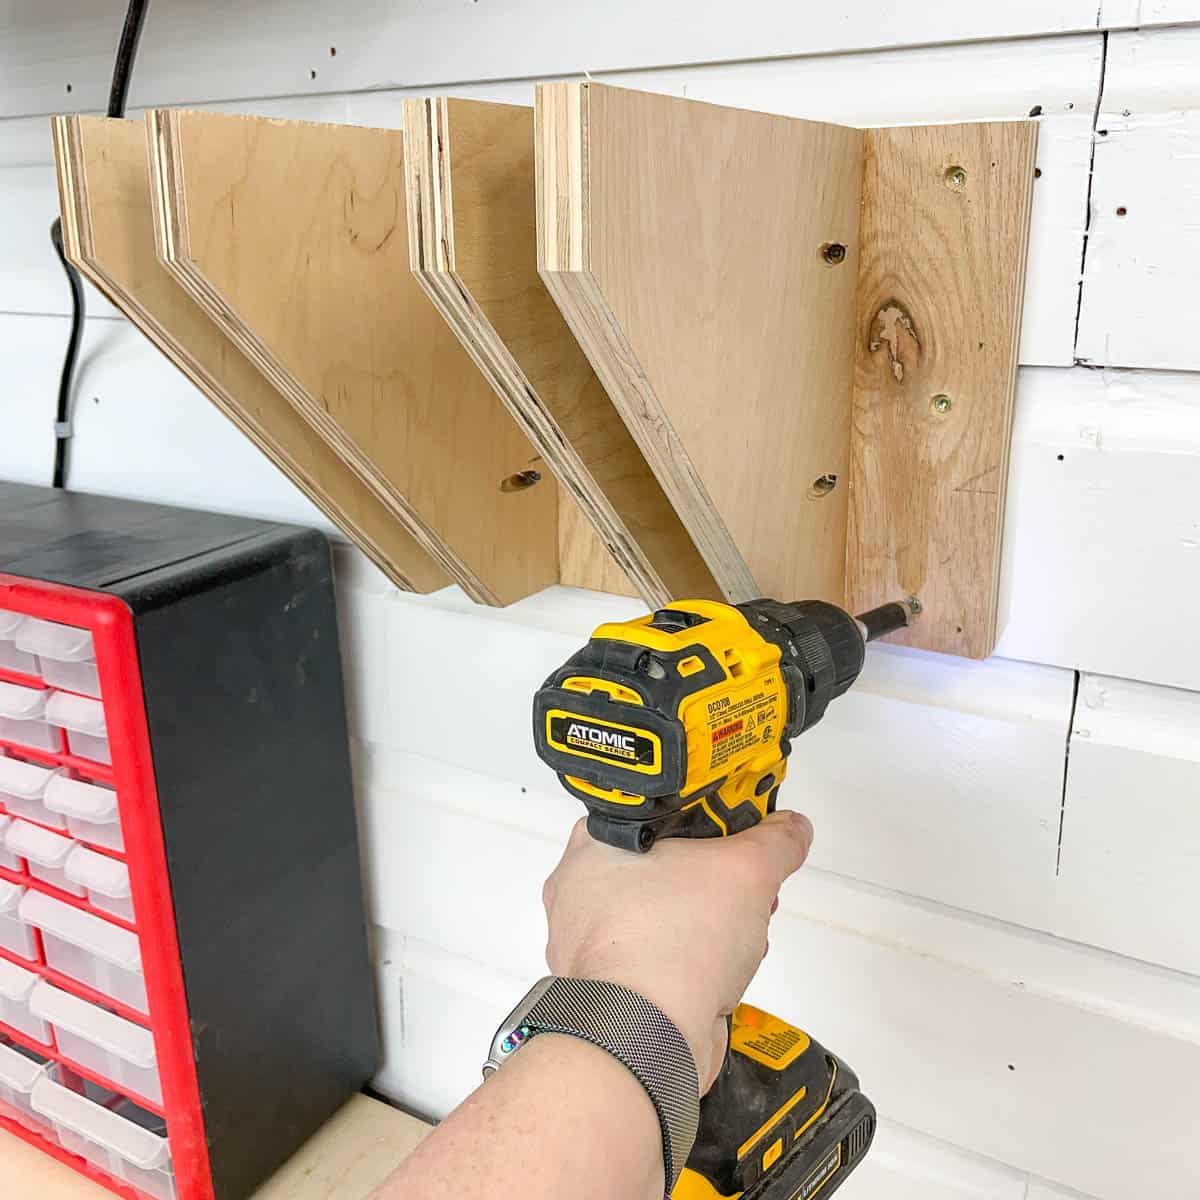 screwing DIY clamp rack to the wall with a cordless drill